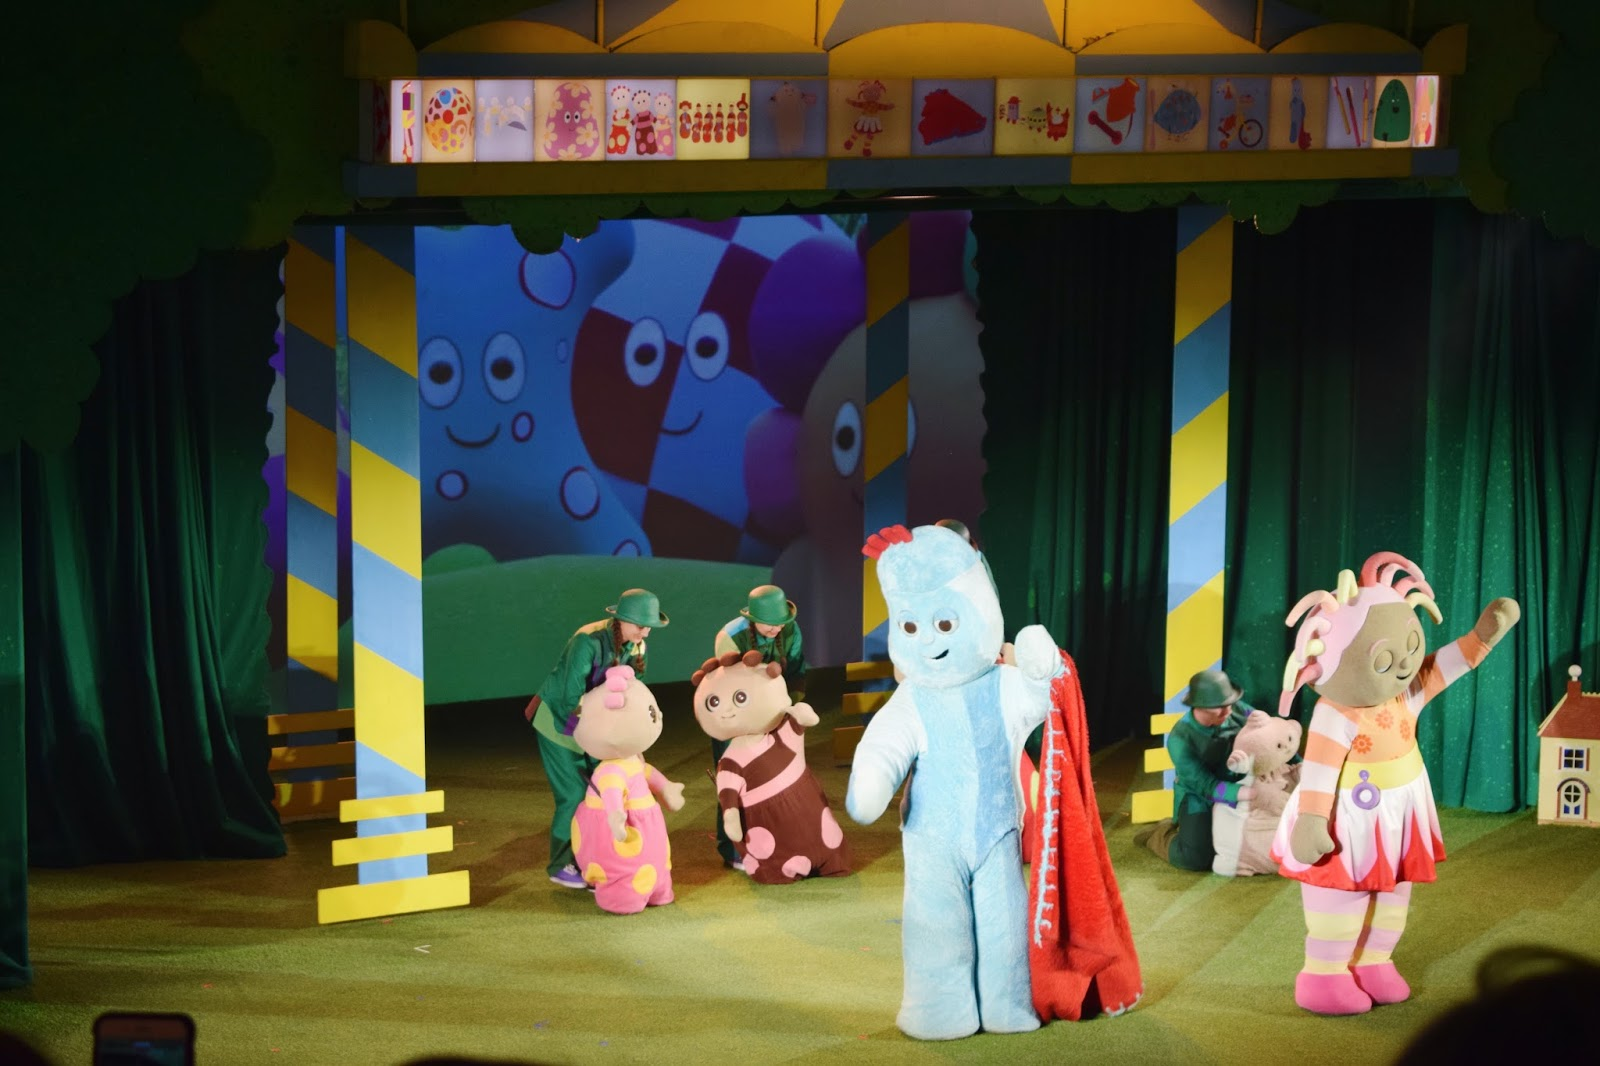 In the night garden live ITNGL